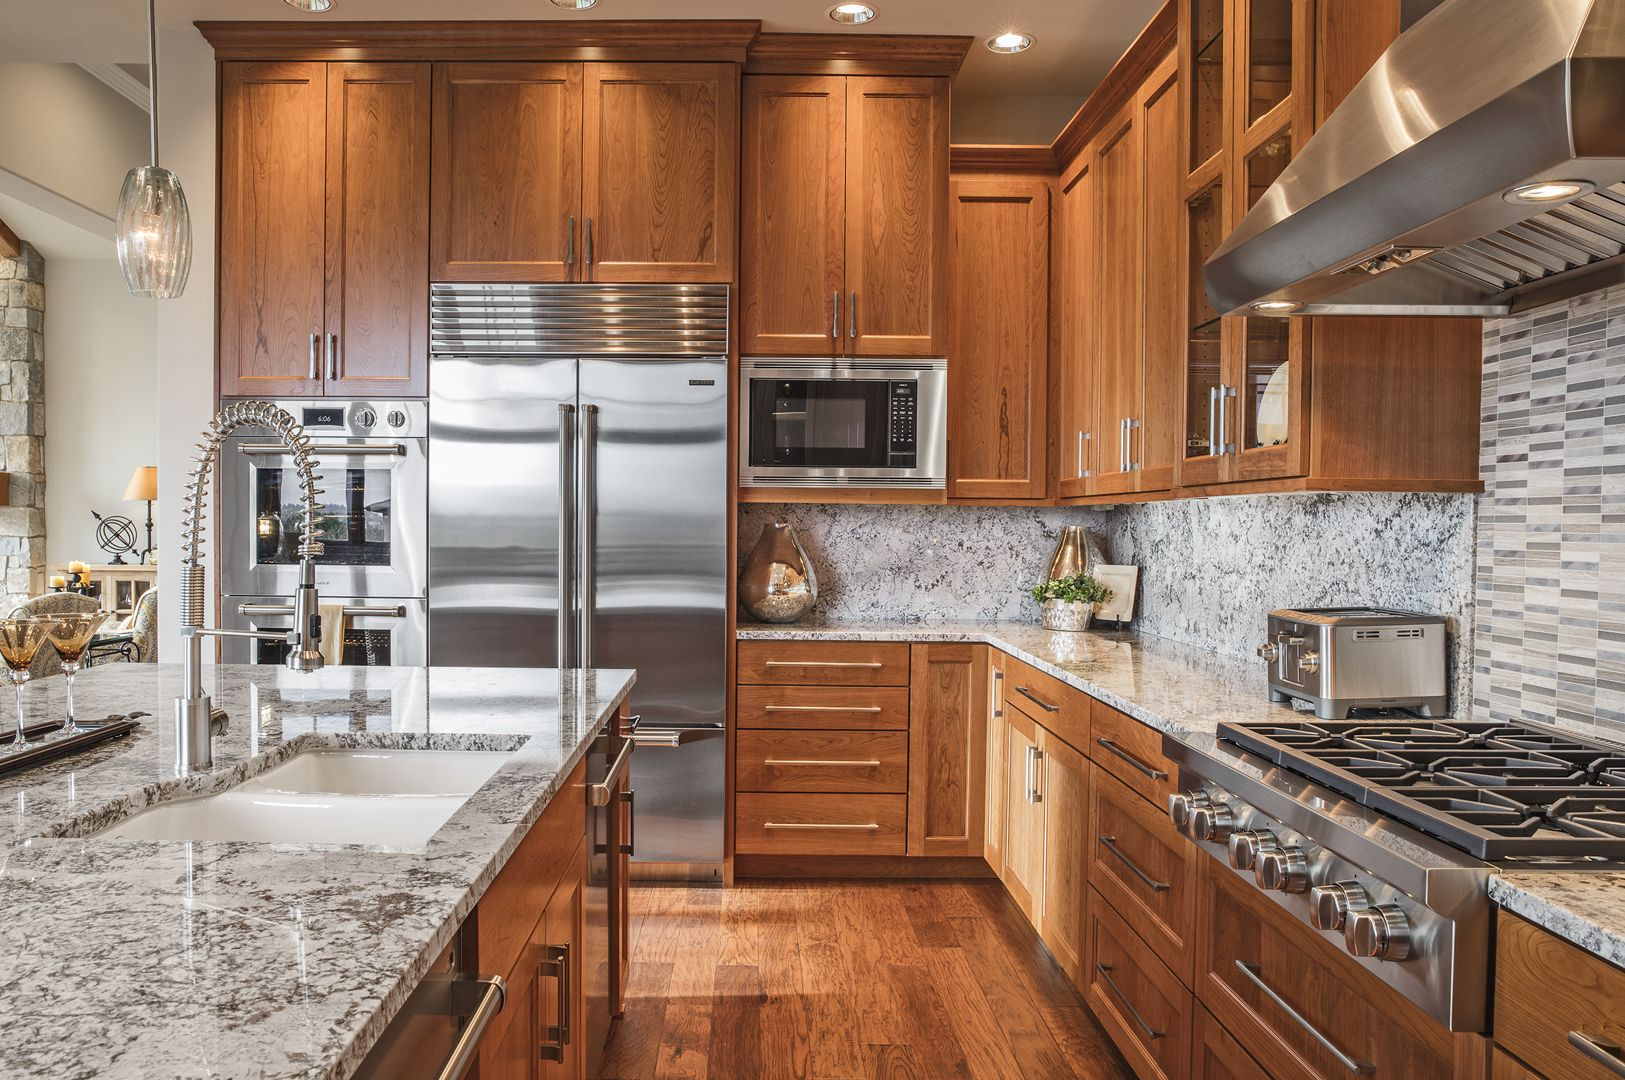 We Make Sure Our Kitchens Are Spacious While Maintaining A Modern Style With High End Hospital Interior Design Custom Kitchens Design Interior Design Kitchen